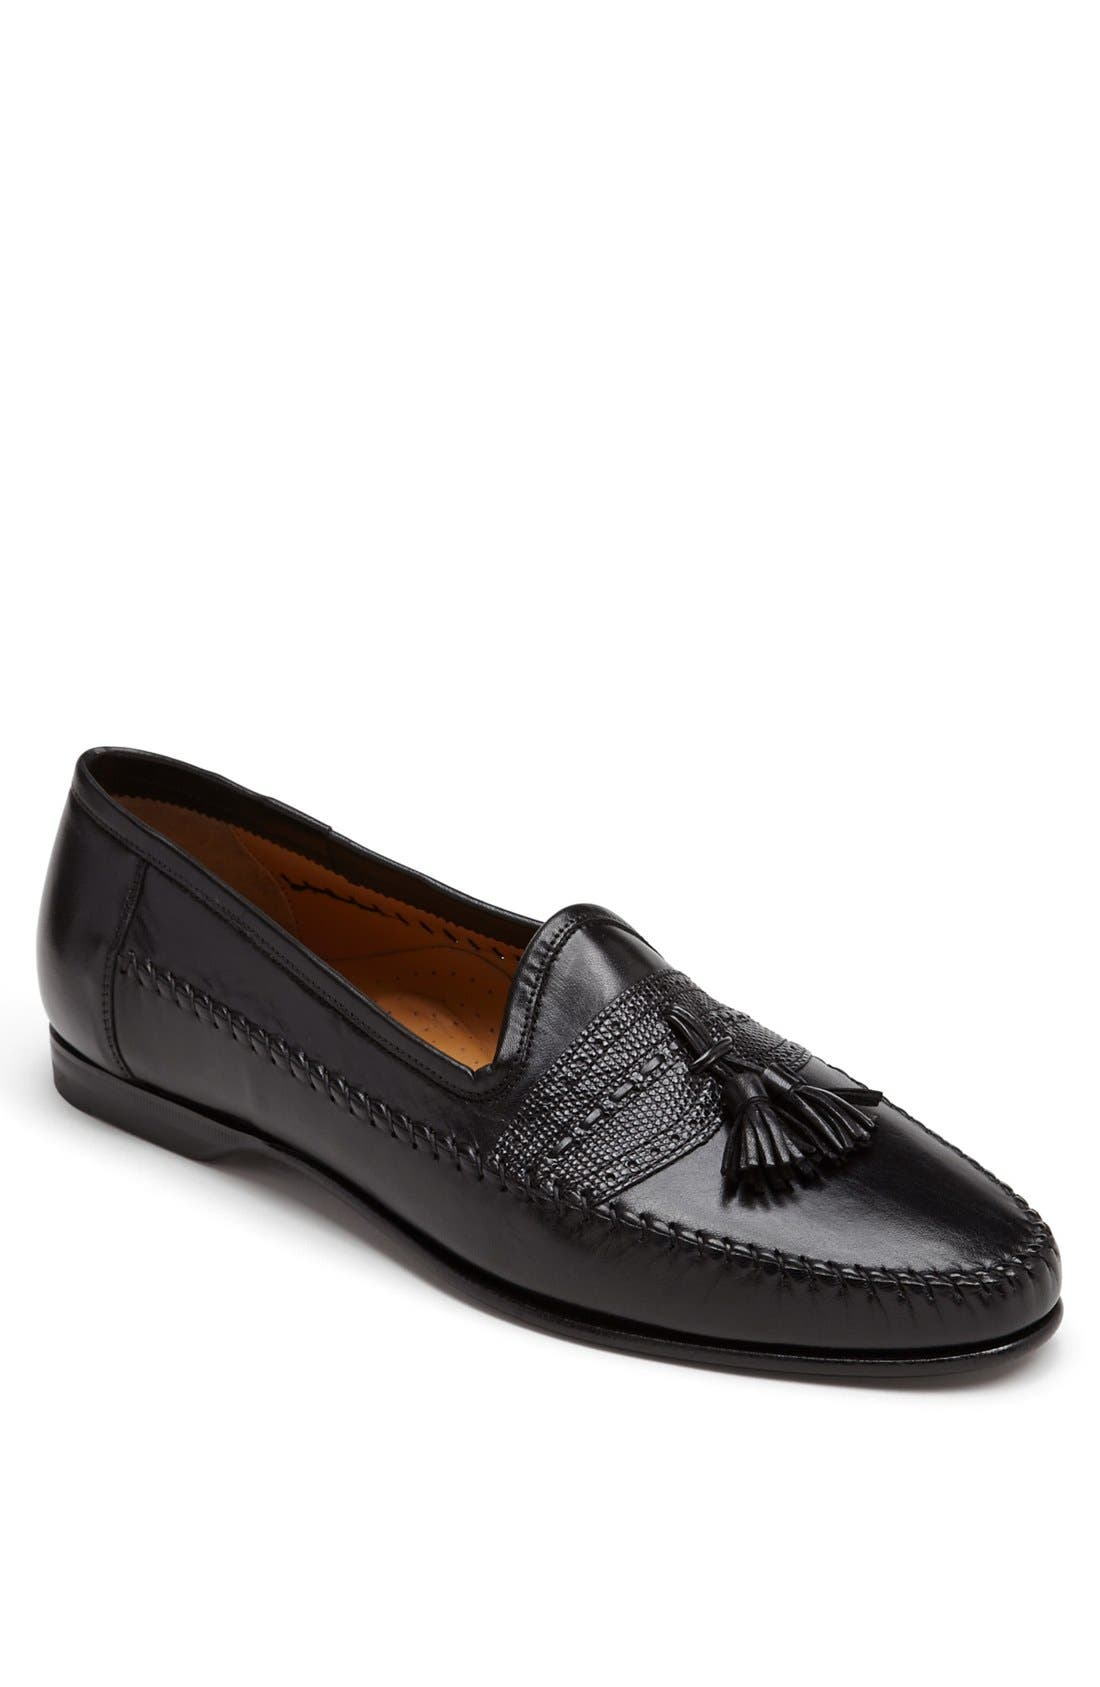 'Hammon' Loafer,                         Main,                         color, BLK